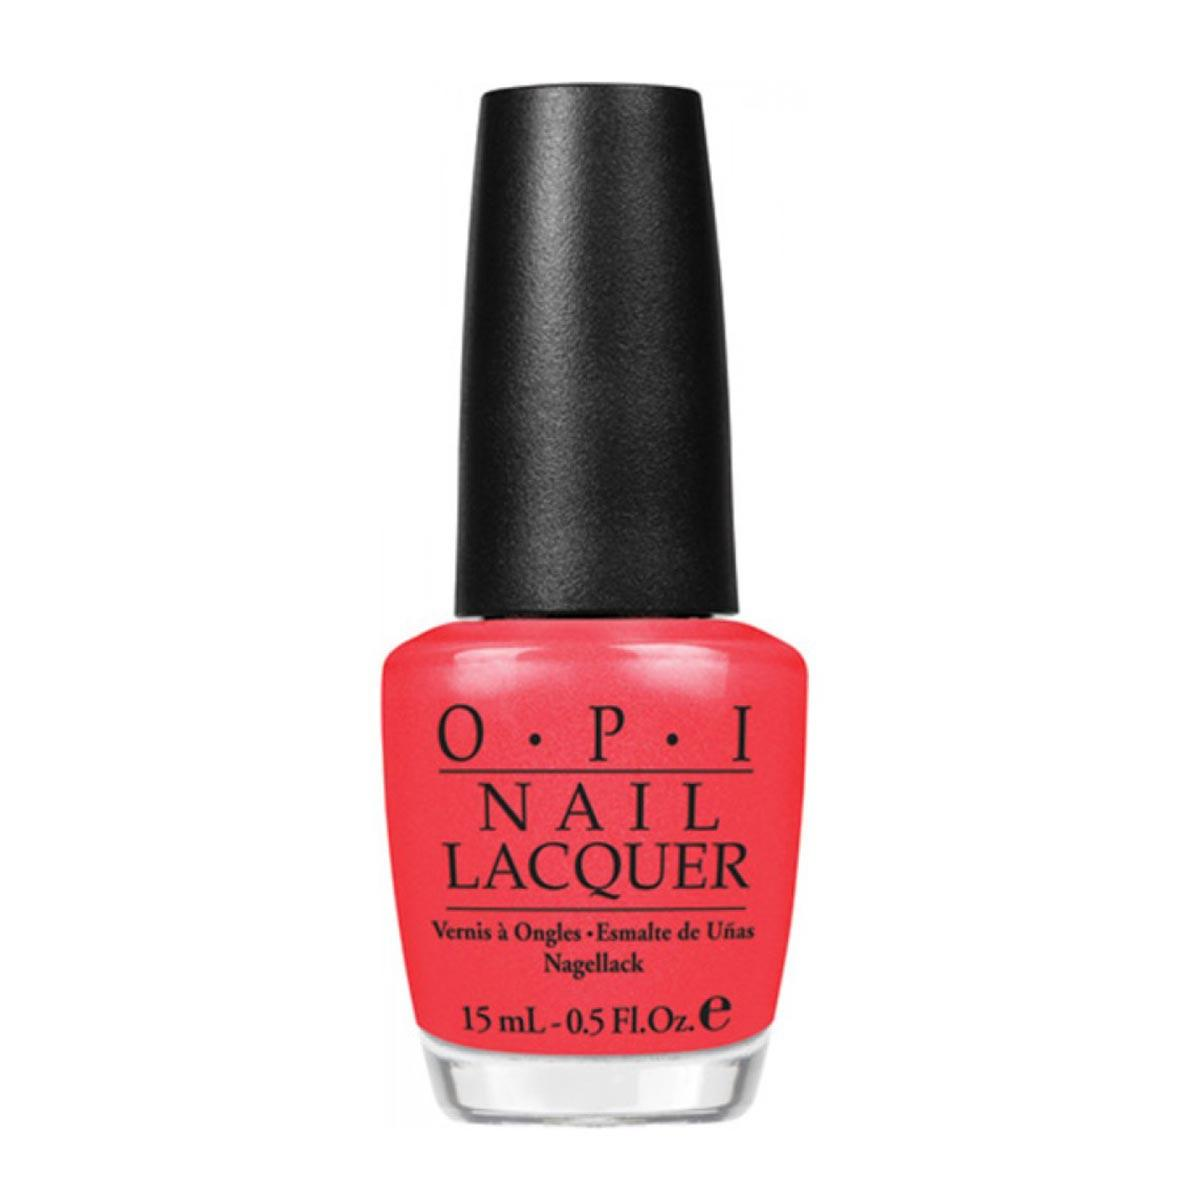 Opi Nail Lacquer Nlt30 I Eat Mainely Lobster